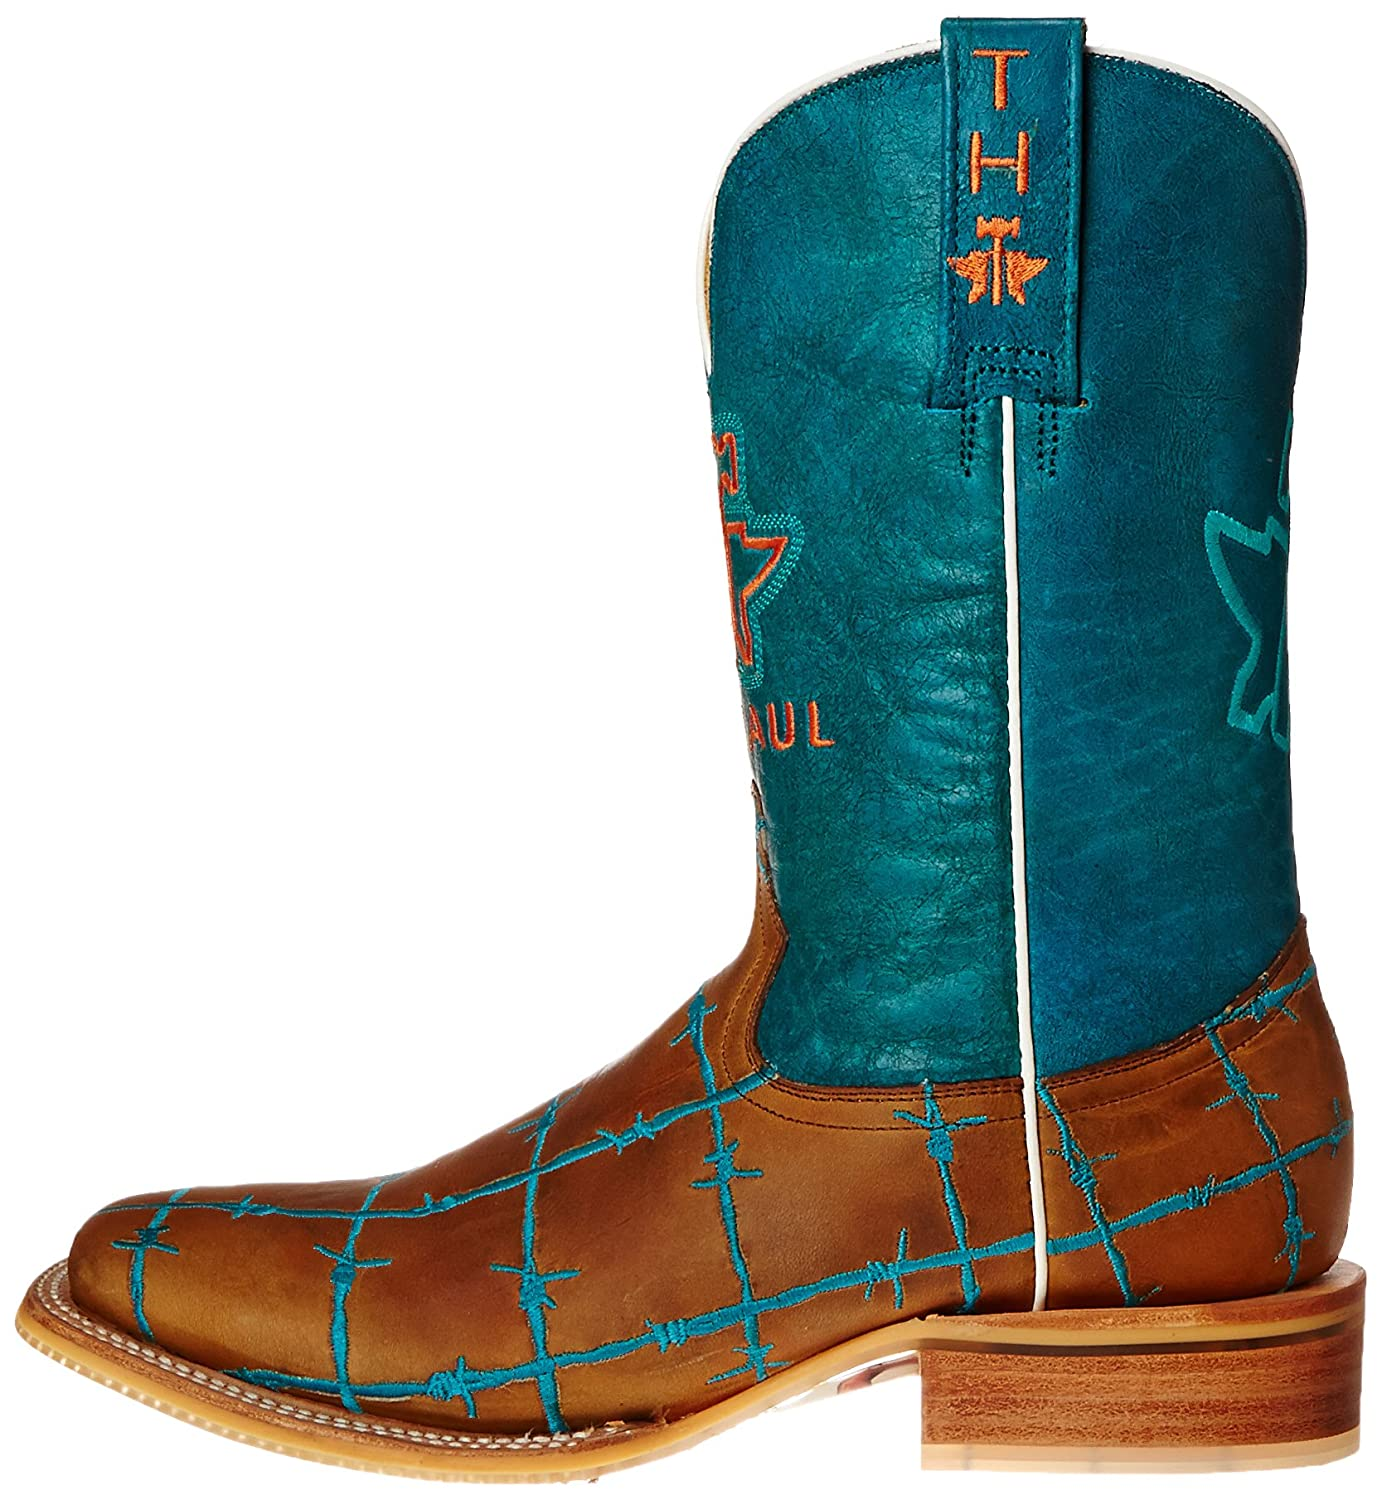 d9b5d4cdcf2 Tin Haul Shoes Women's Barb'D Wire Western Boot, Tan & Turquoise, 11 ...